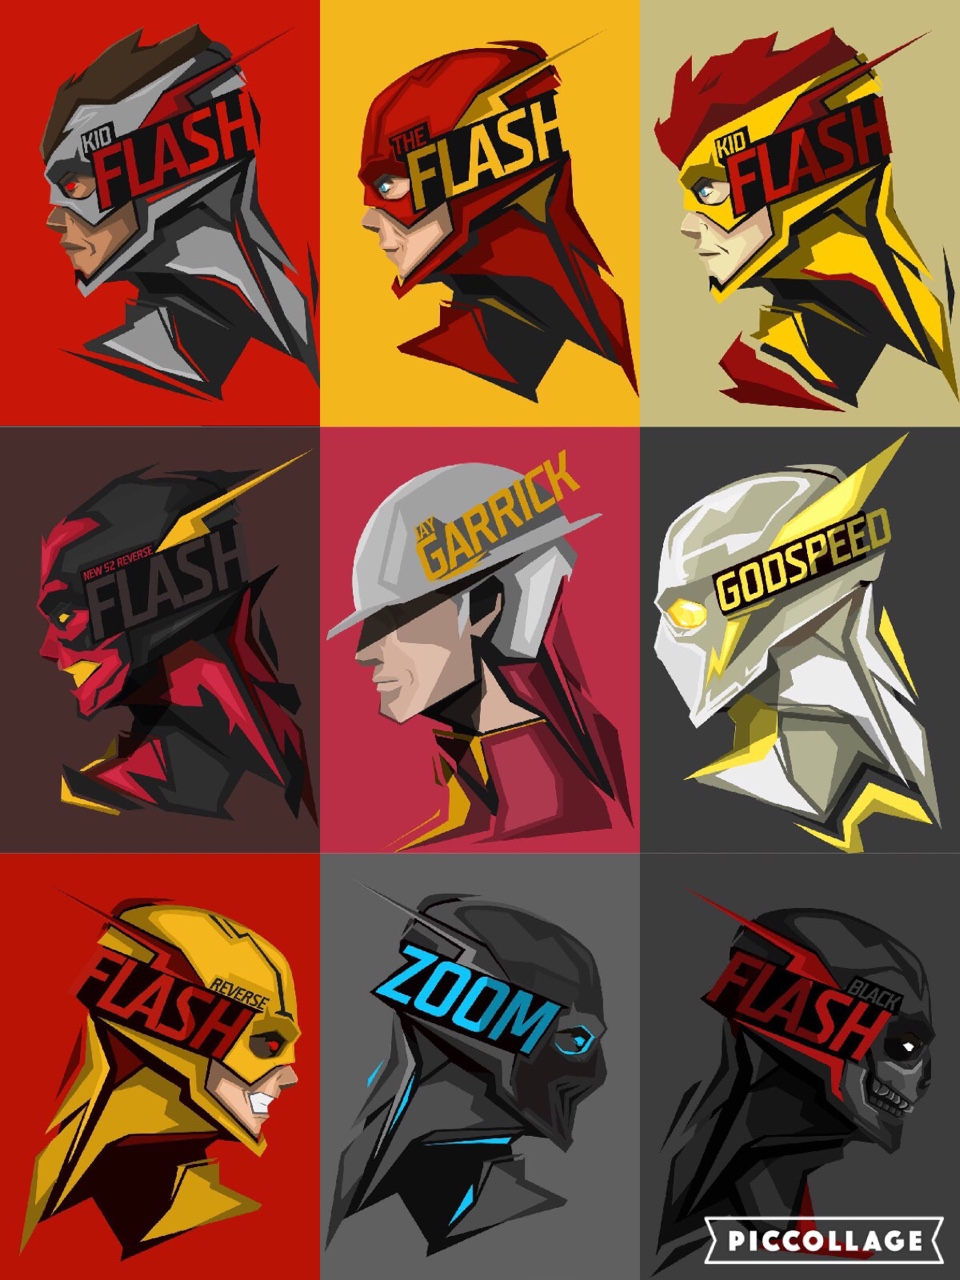 Flash clipart marvel hero On and I related Pin